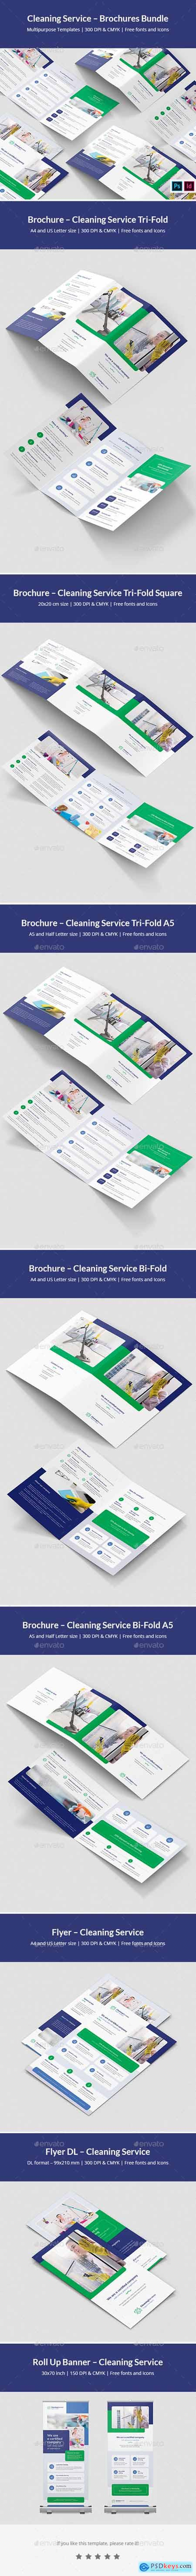 Cleaning Service – Brochures Bundle Print Templates 8 in 1 25675641